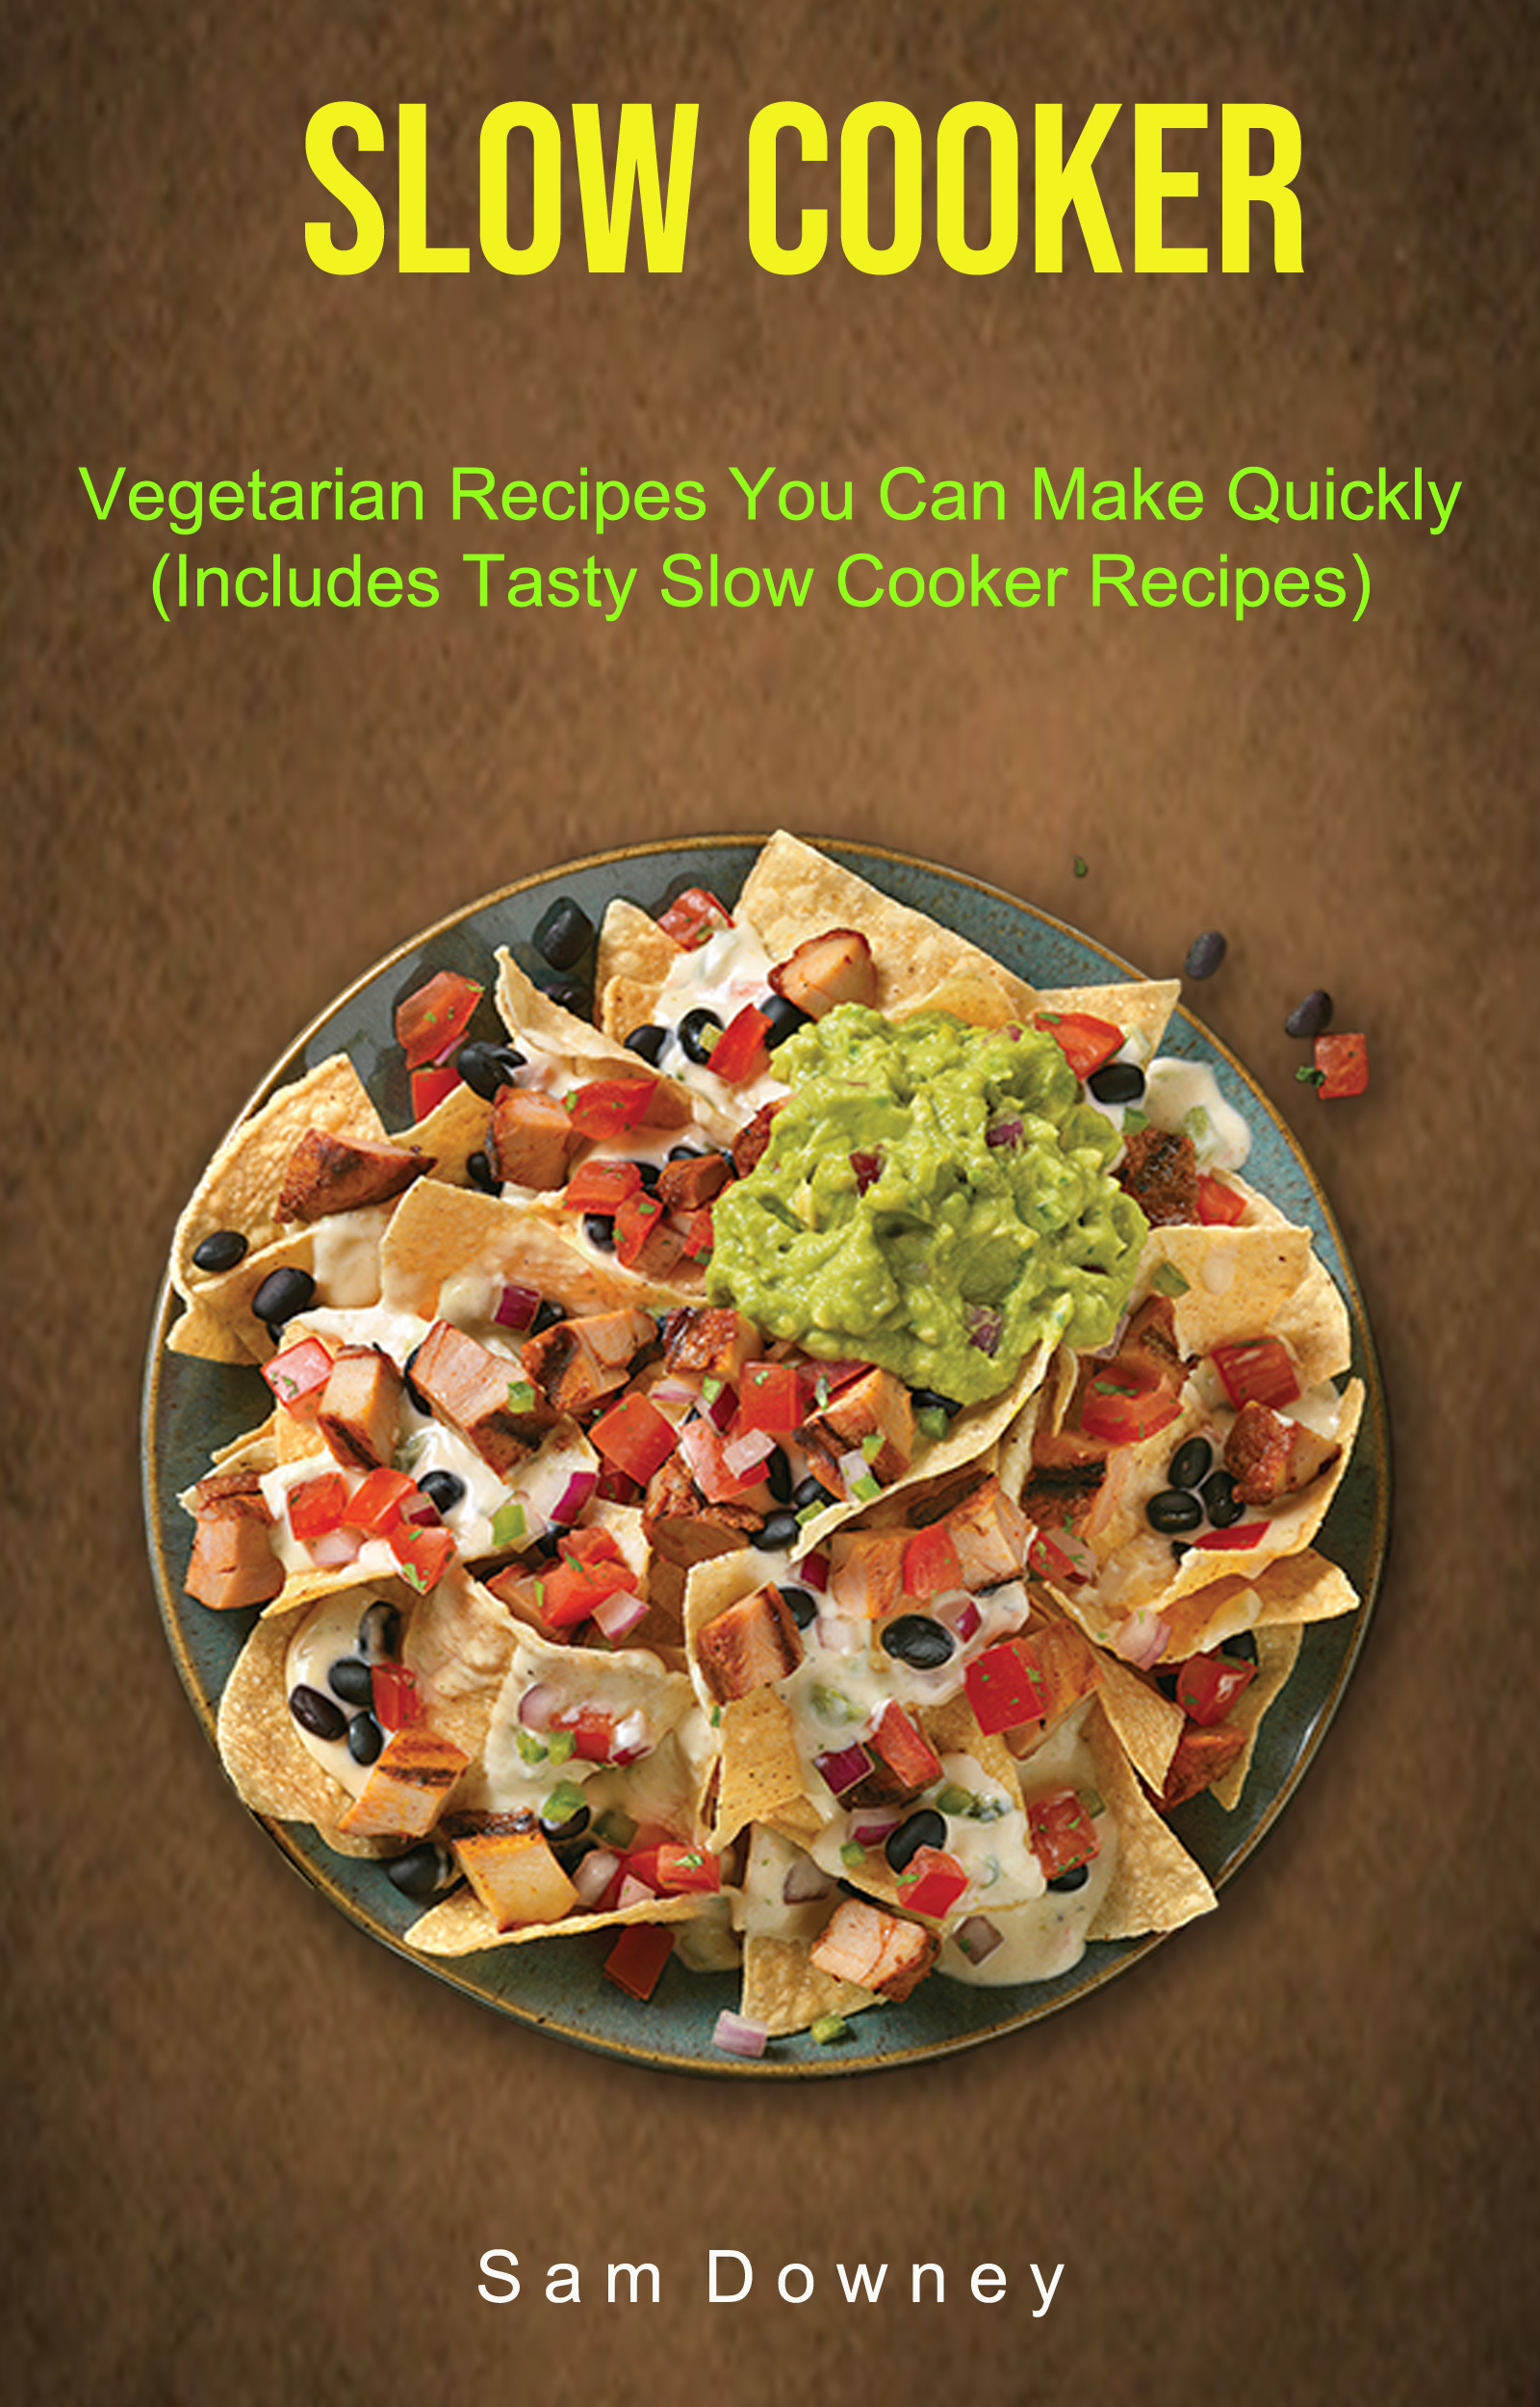 Slow cooker: vegetarian recipes you can make quickly (includes tasty slow cooker recipes)